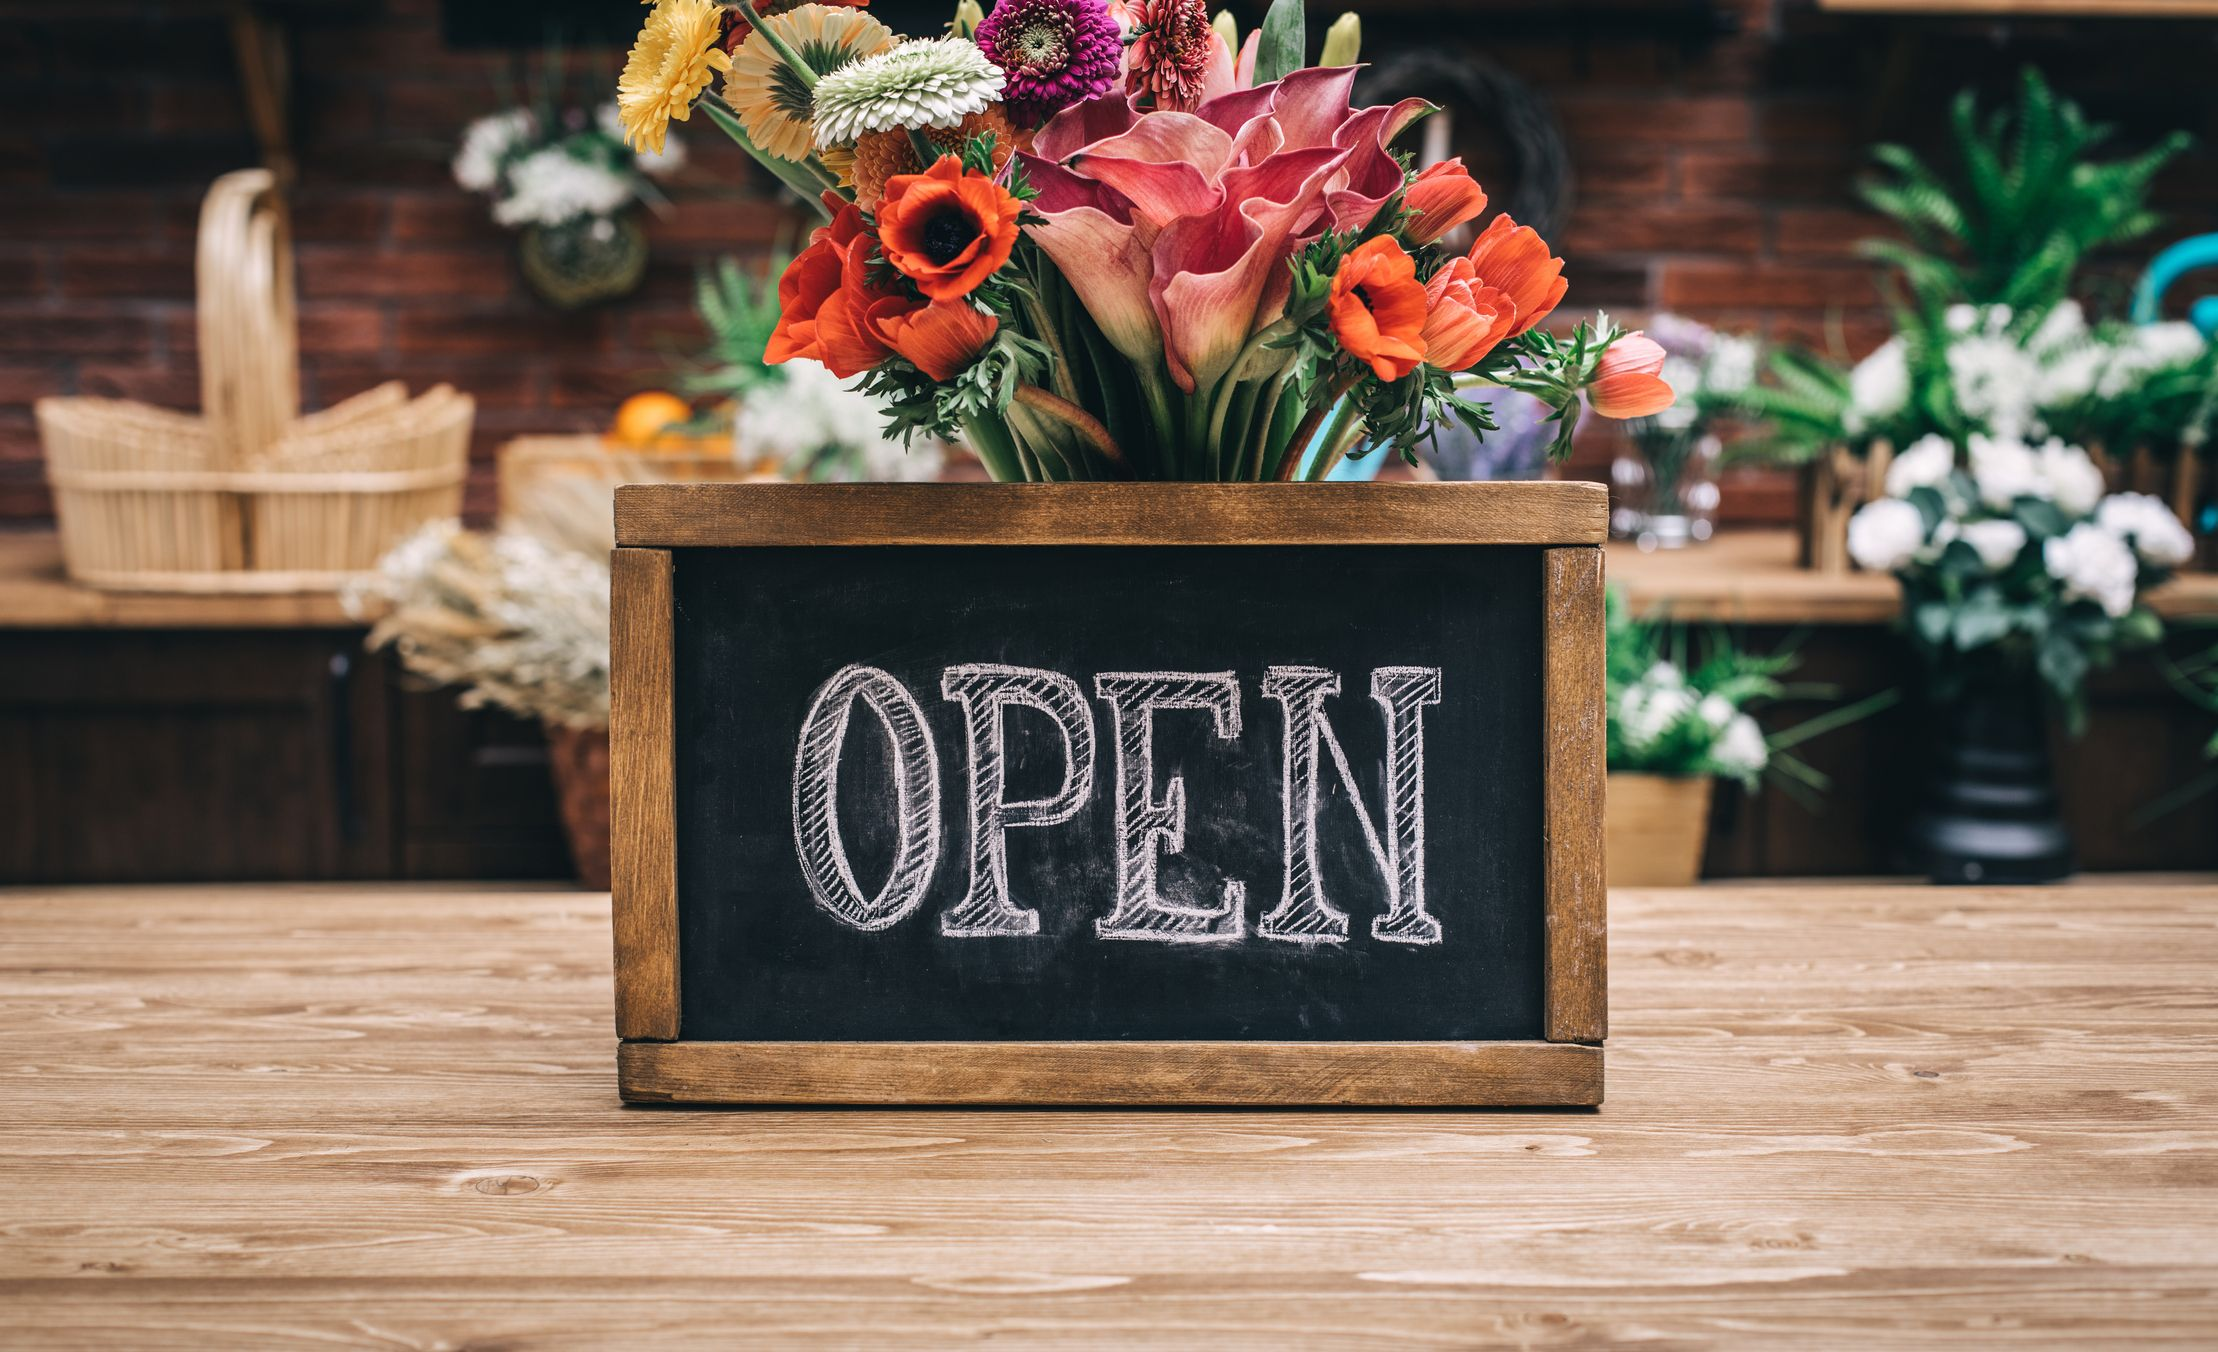 These Stores Are Open on Easter Sunday 2019 - Stores Open and Closed on Easter Sunday